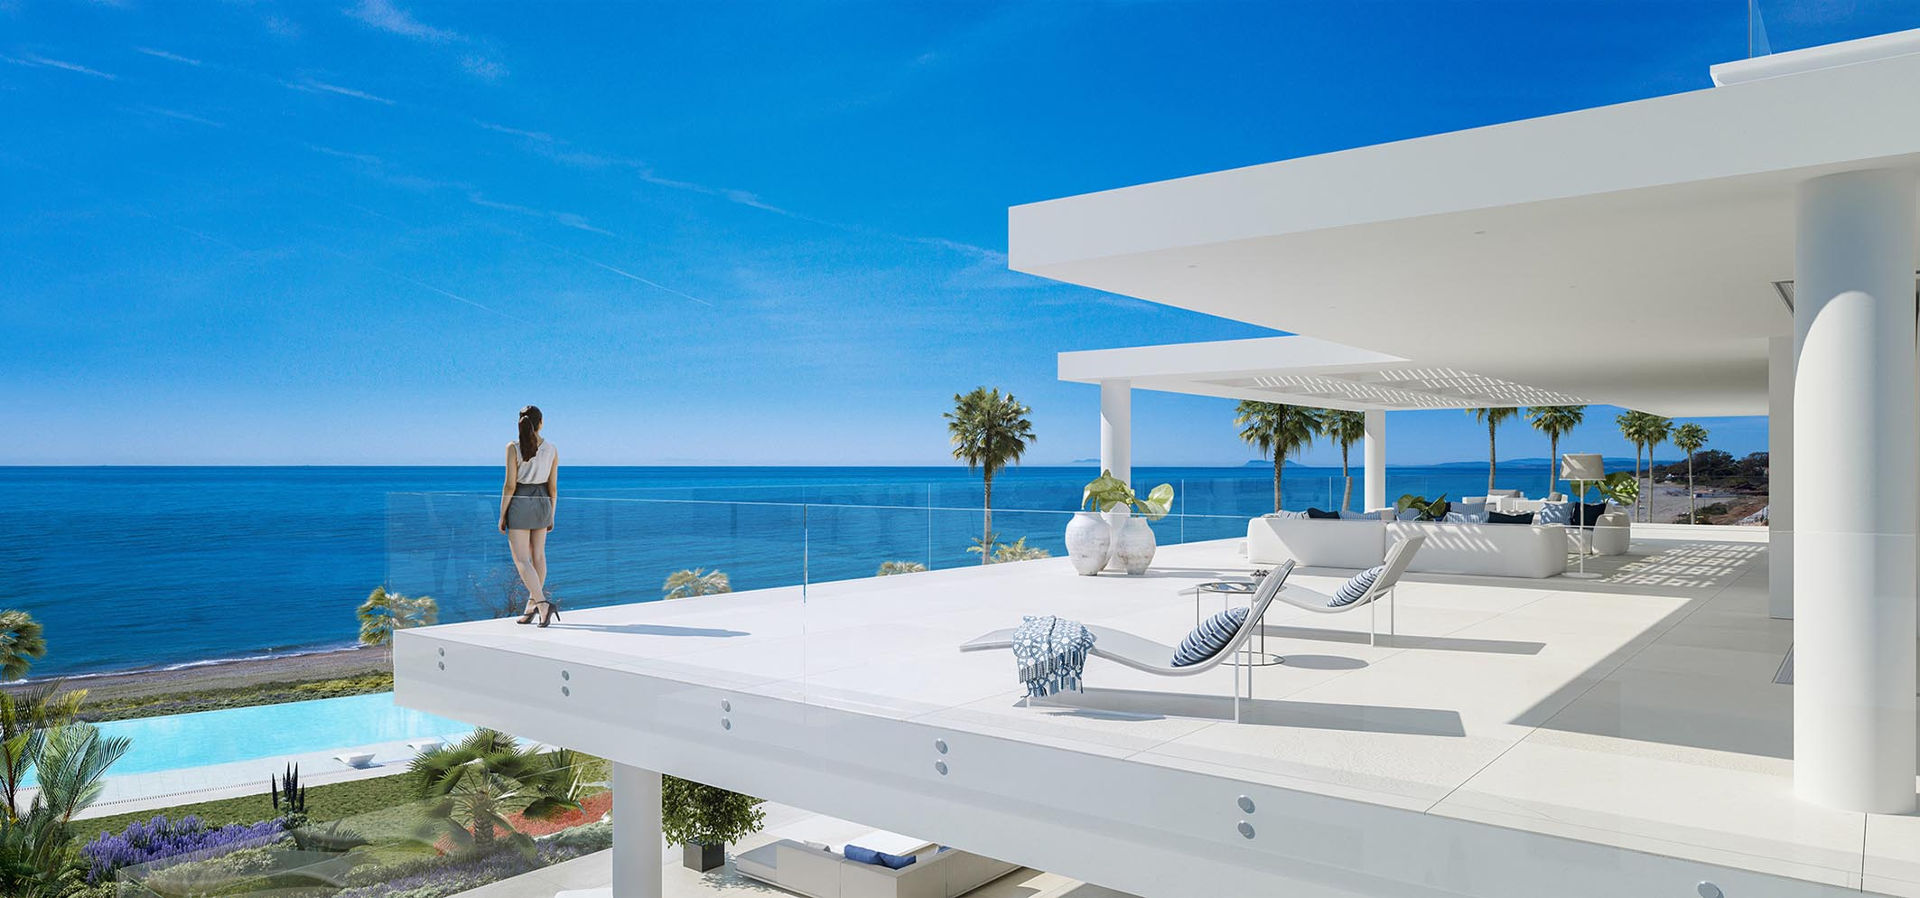 Emare Estepona Beach Front Luxury Apartment Homes Realista